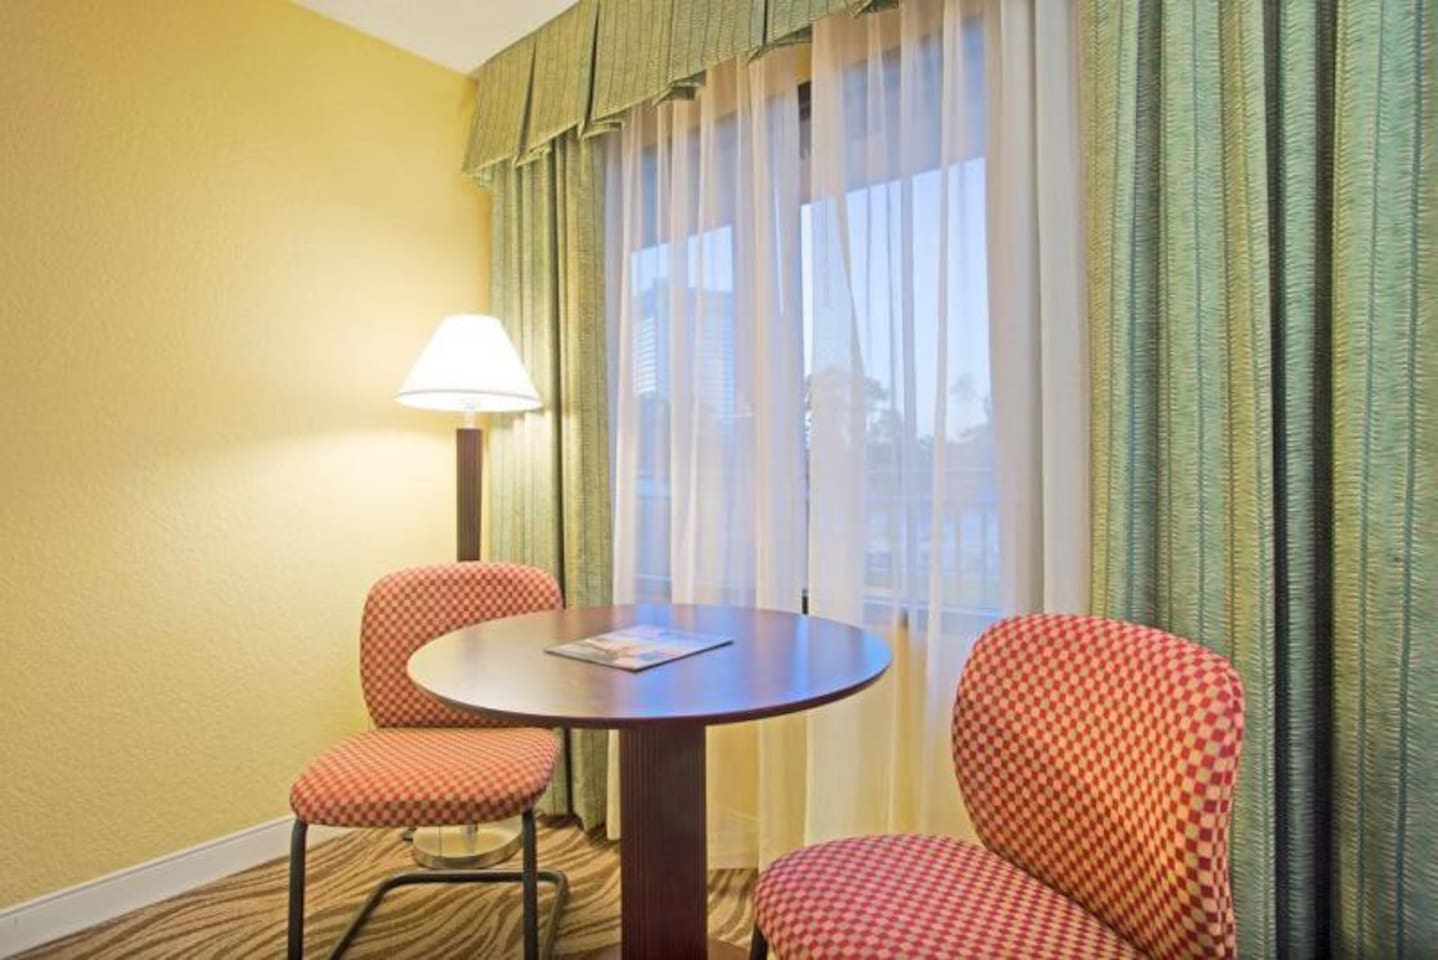 Additional seating is the perfect place to start your morning with coffee or tea